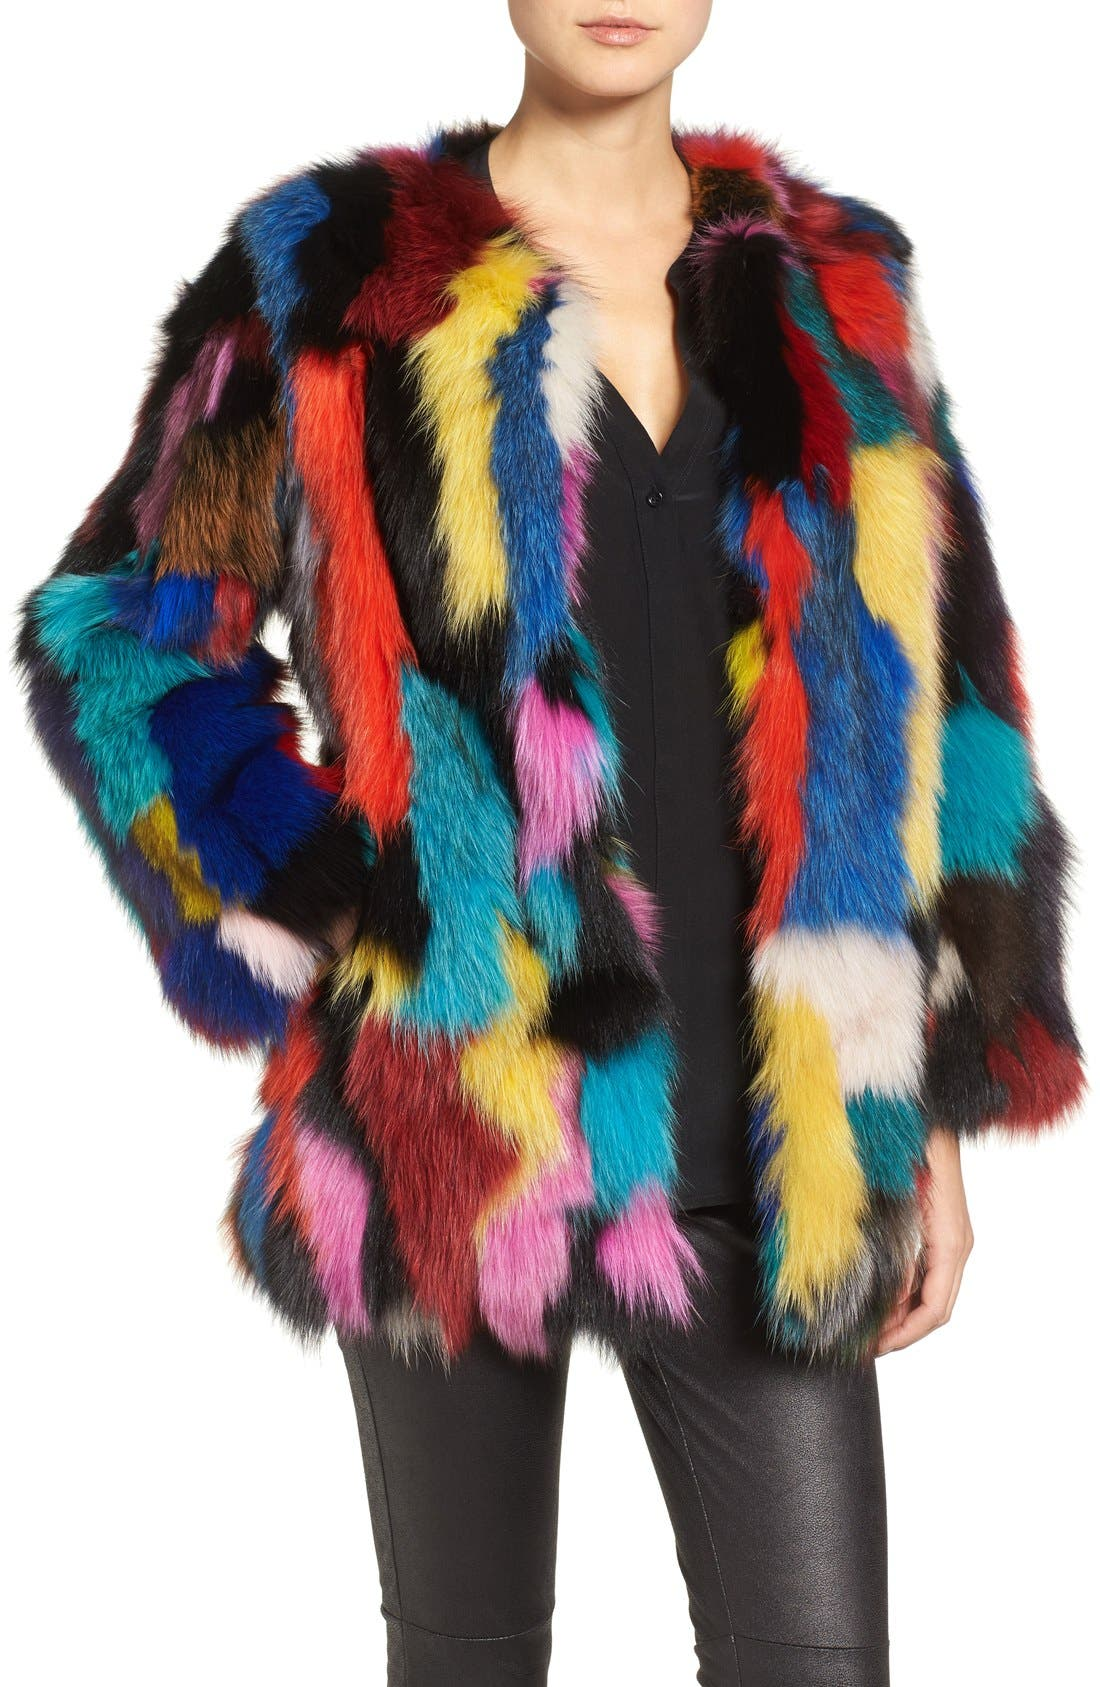 Marmalade Patchwork Genuine Fox Fur Coat,                             Main thumbnail 1, color,                             400